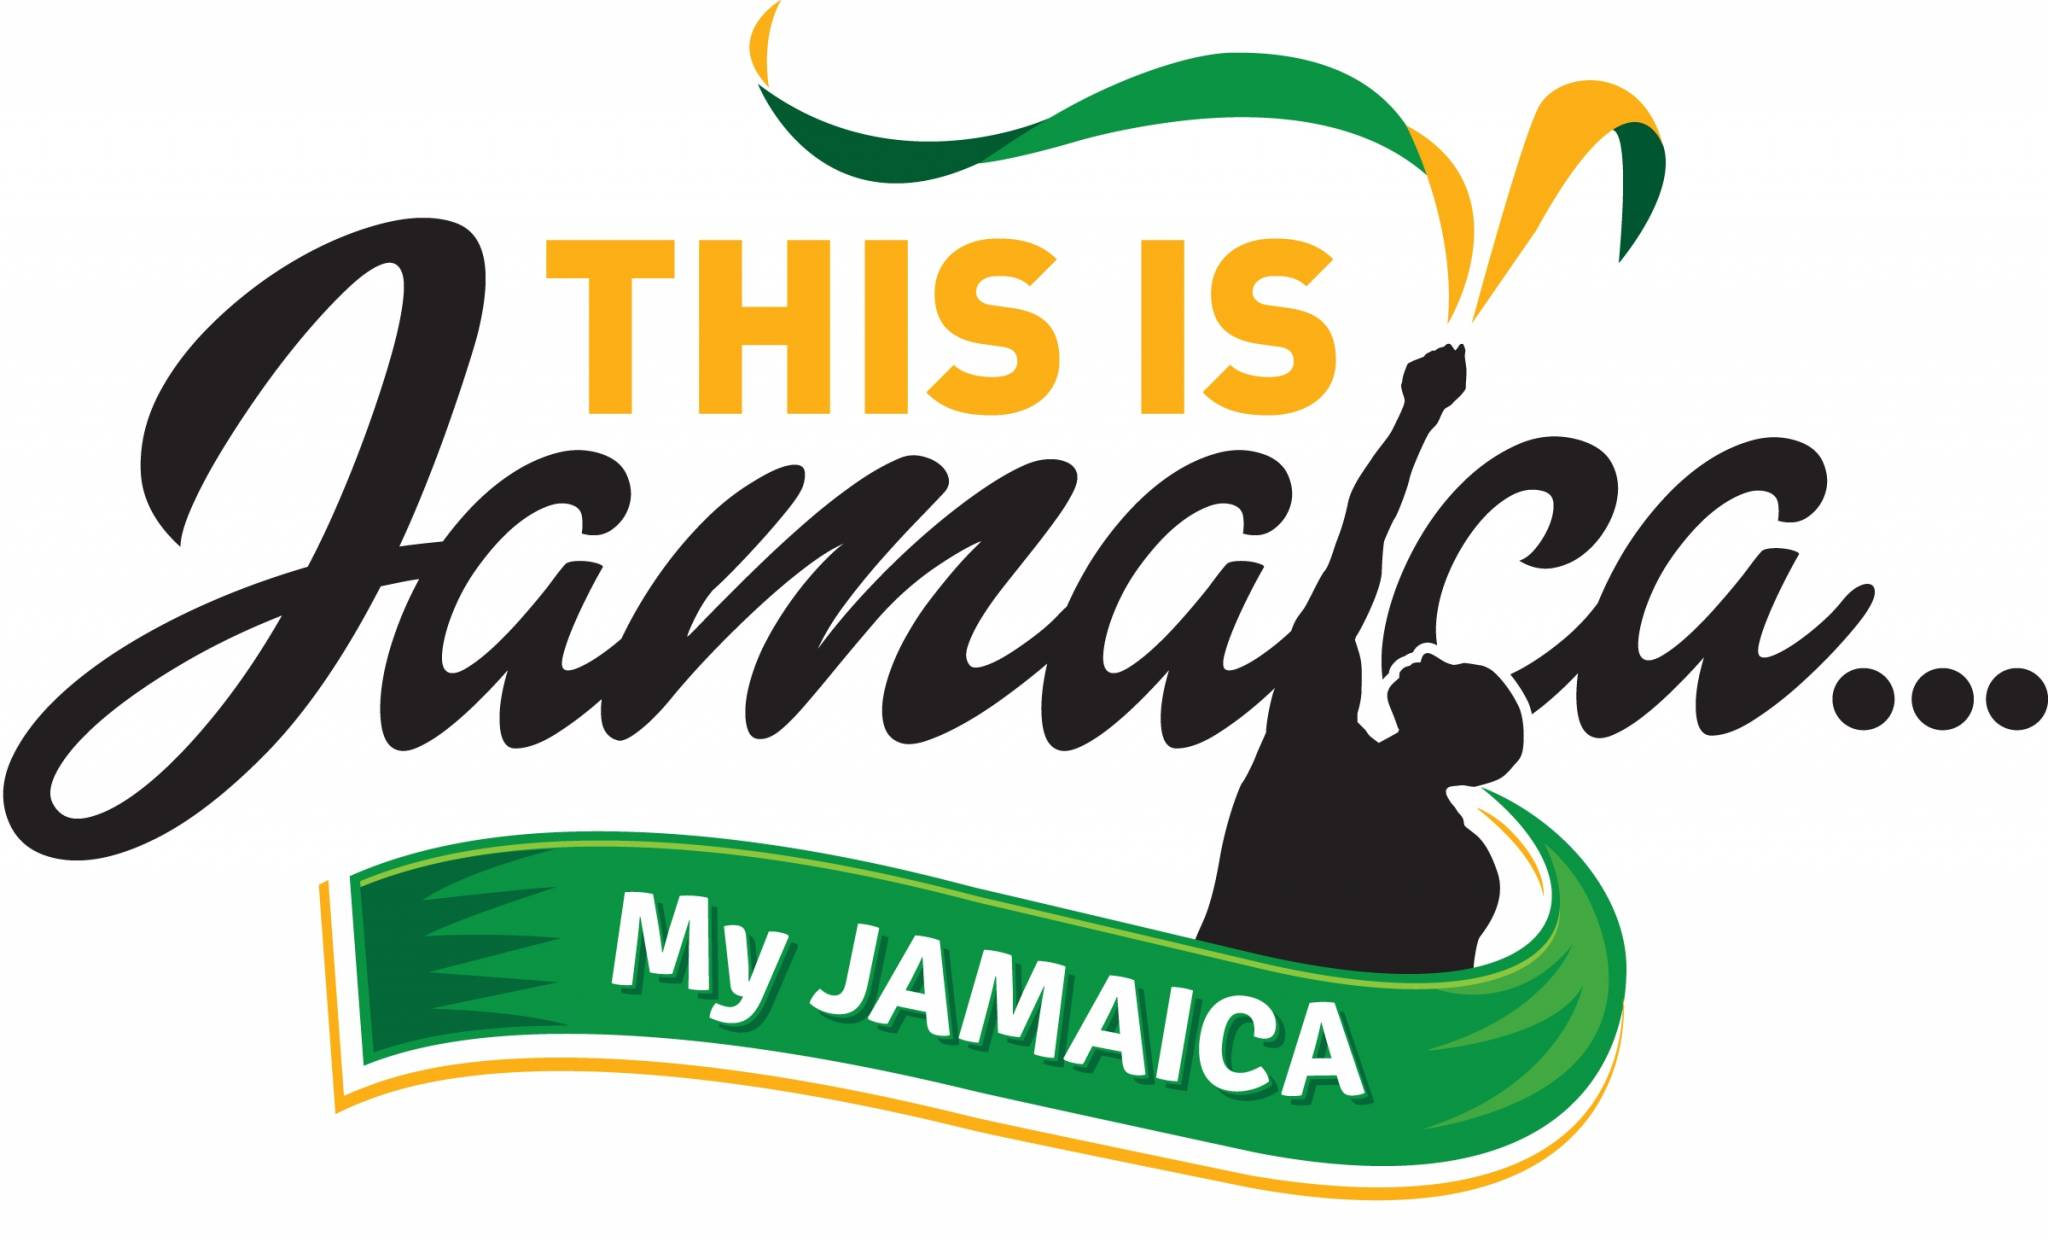 Emancipation Independence Celebrations Jamaica - Jamaica independence day